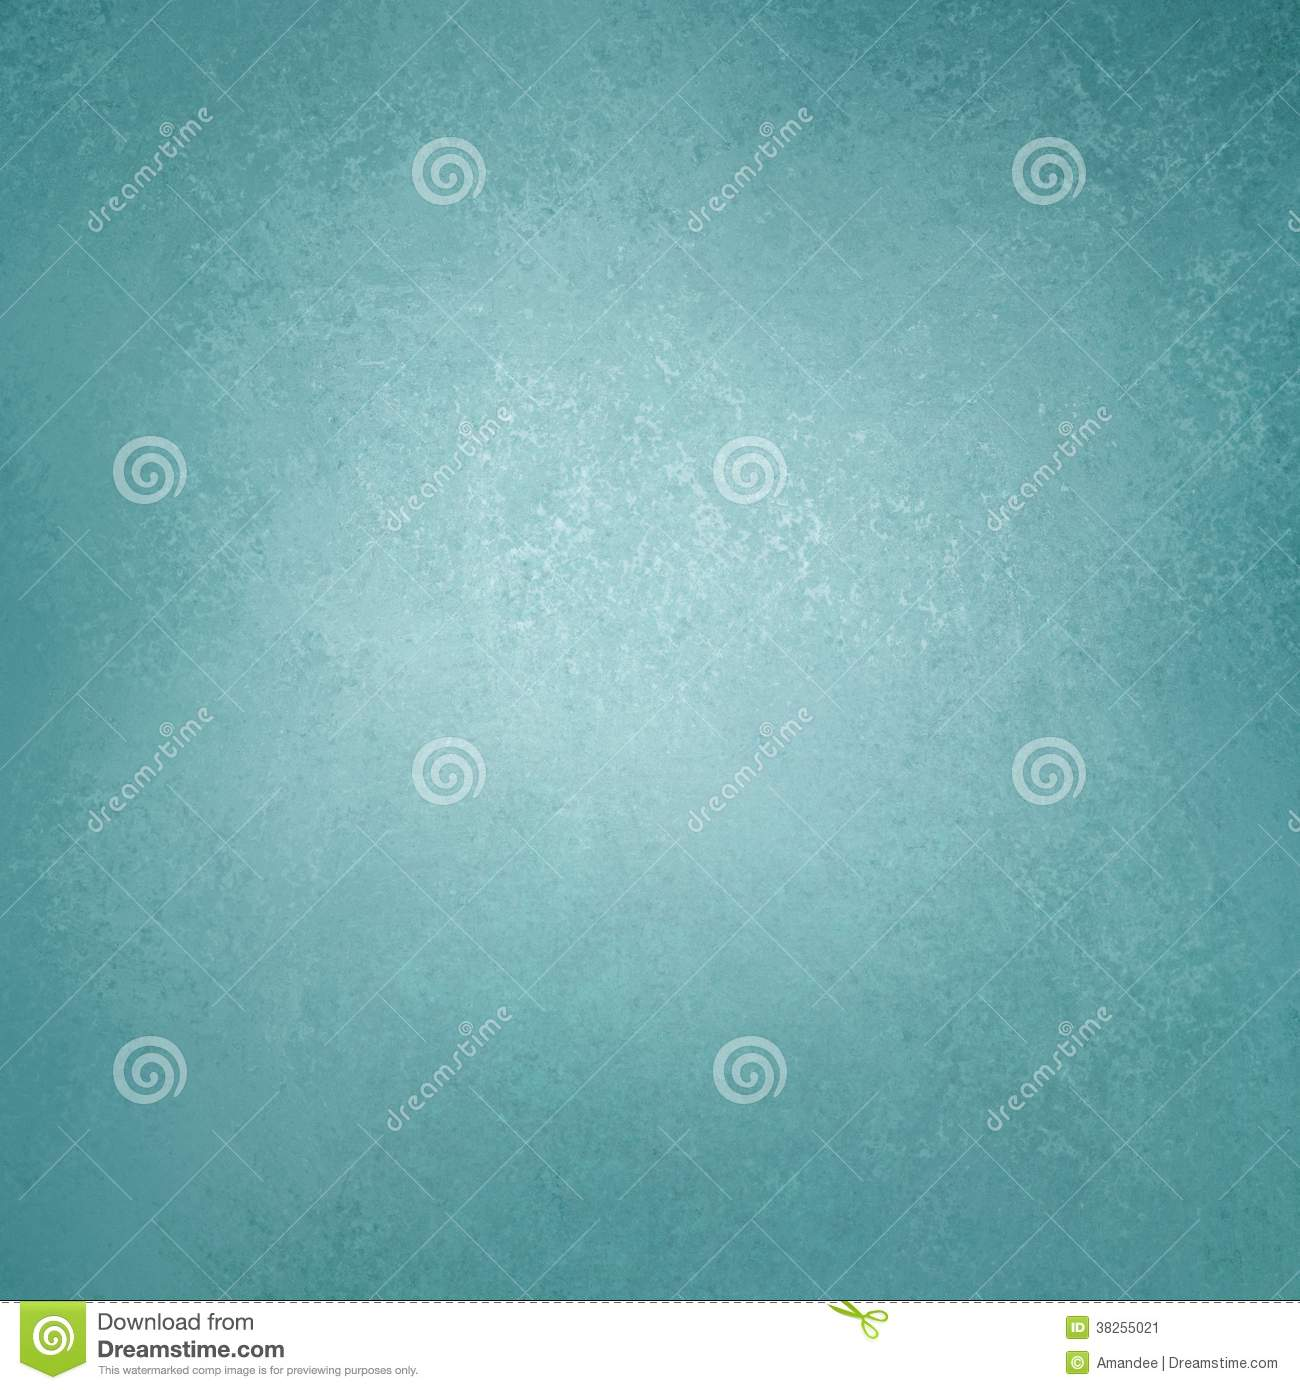 Abstract blue background luxury rich vintage grunge background texture design with elegant antique paint on wall illustration